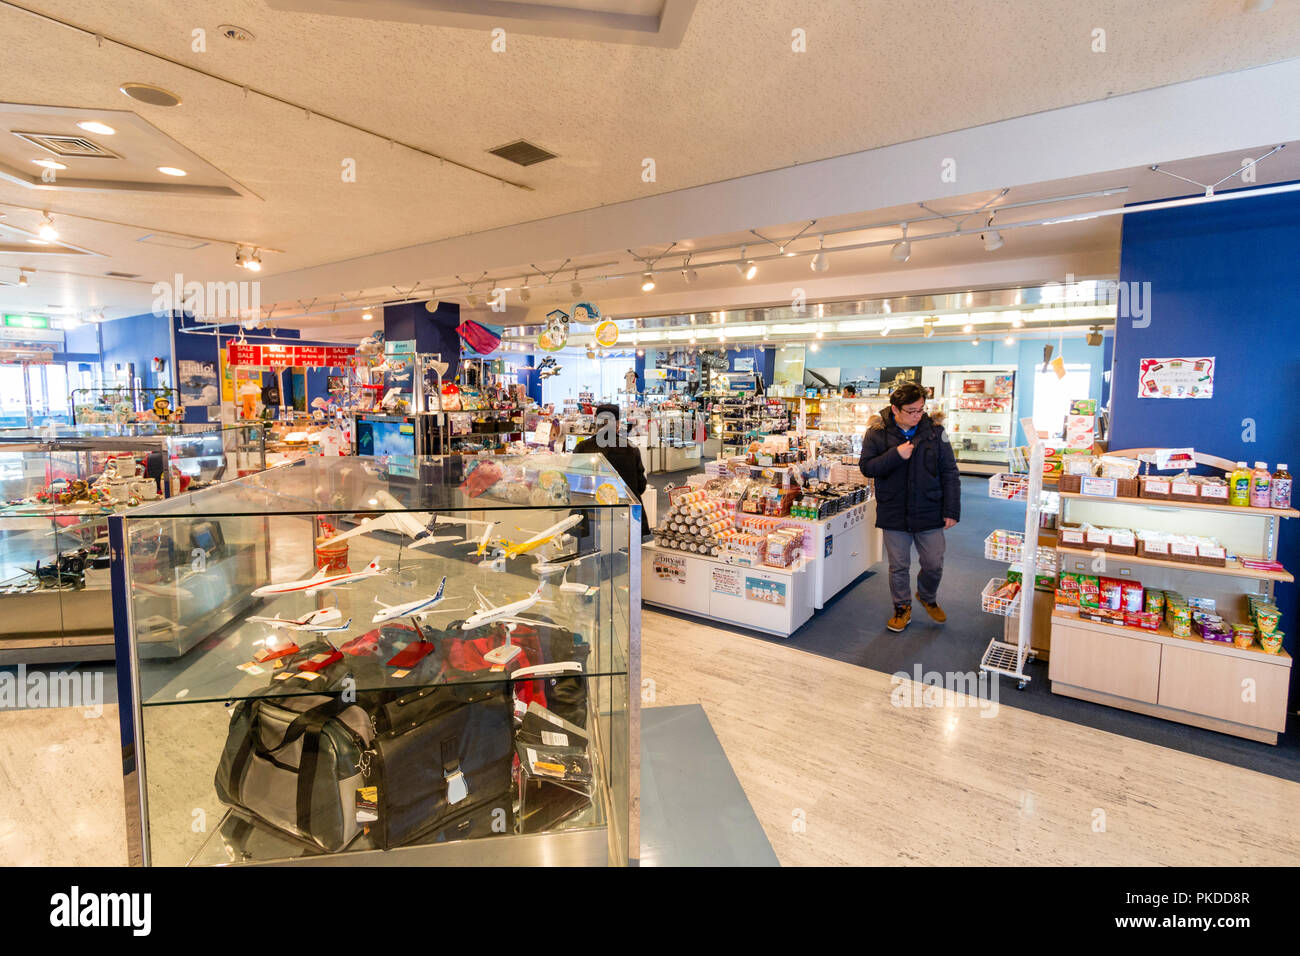 Japan, Osaka. Kansai International Airport. KIX. Interior, Sky Museum shop. General view of display counters, models and products with two customer. - Stock Image